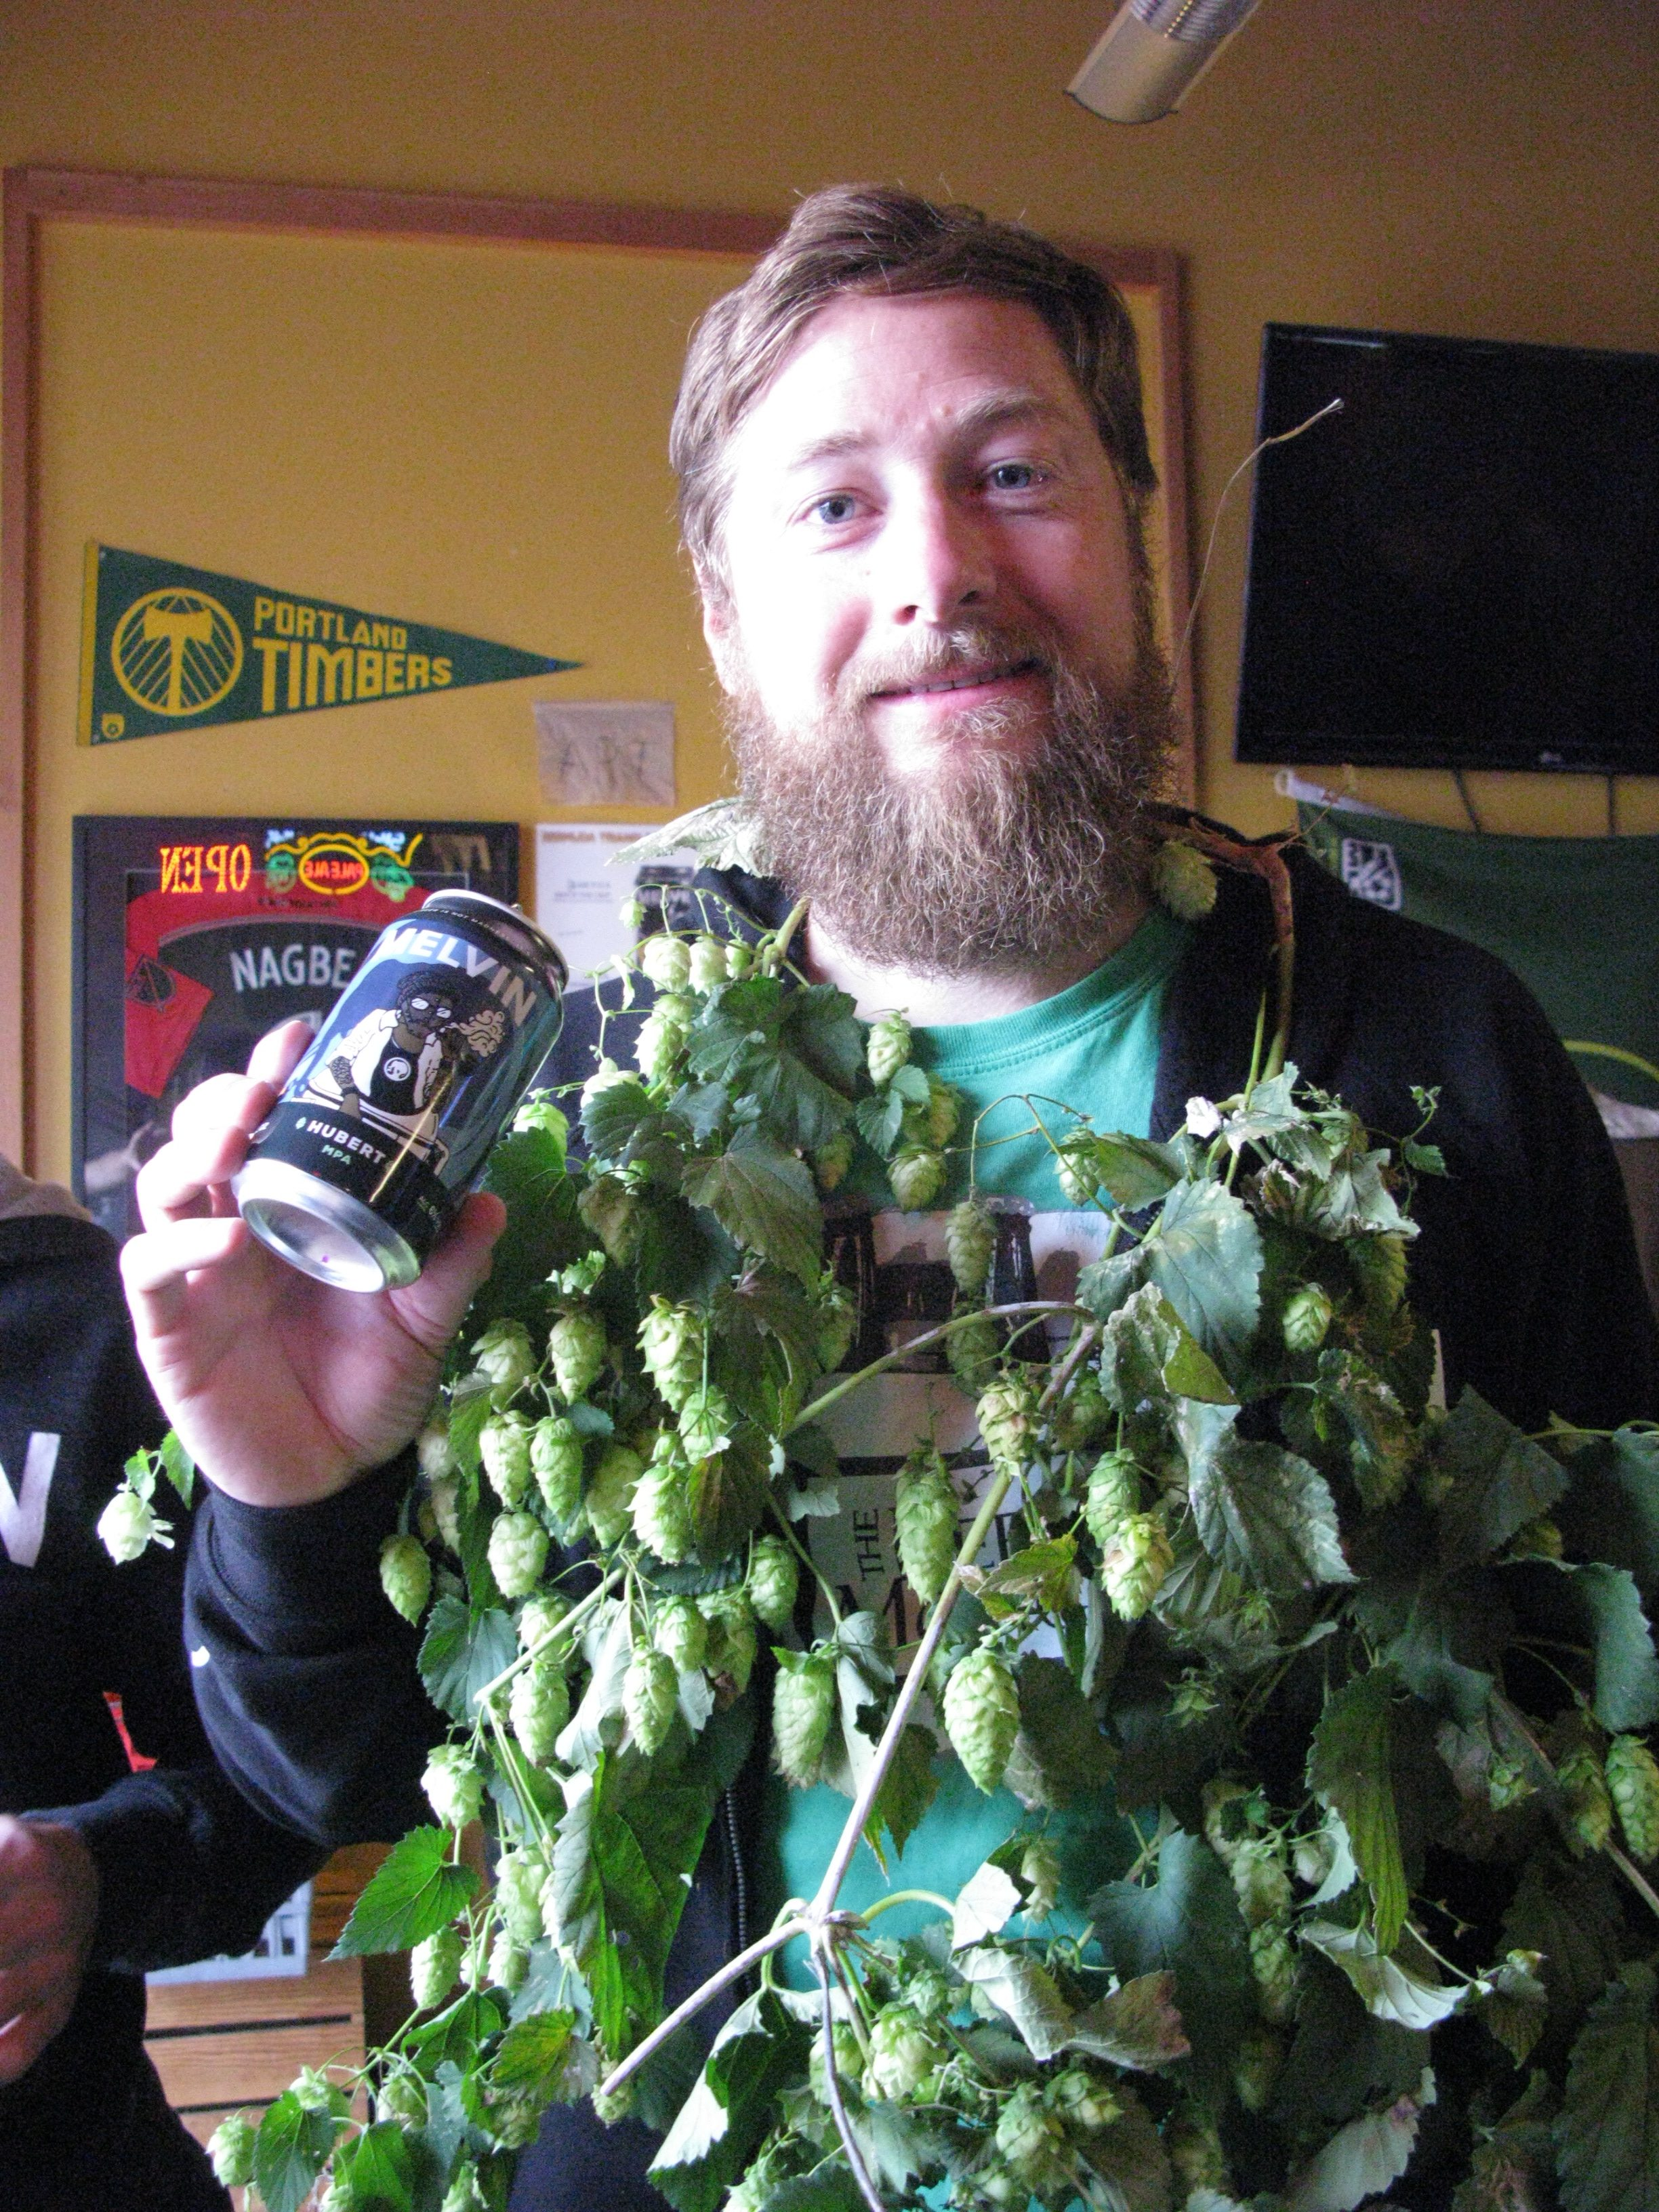 Jeremy Tofte with hops all over him at The BeerMongers. (FoystonFoto)